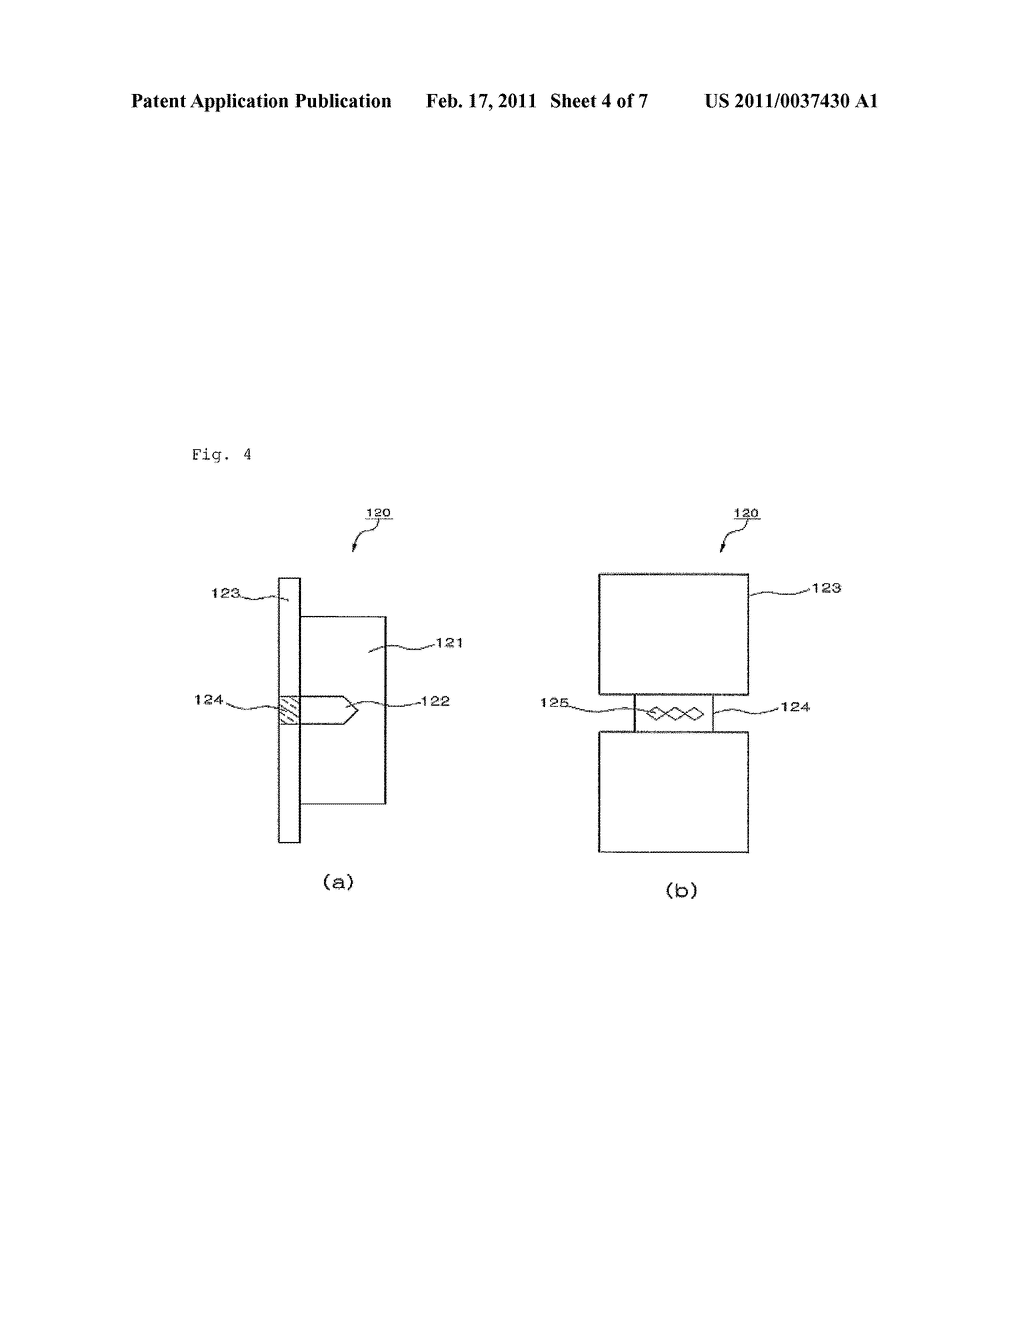 Safety Switch for Secondary Battery for Electric Vehicle and Charging Discharging System for Secondary Battery for Electric Vehicle Using the Same - diagram, schematic, and image 05